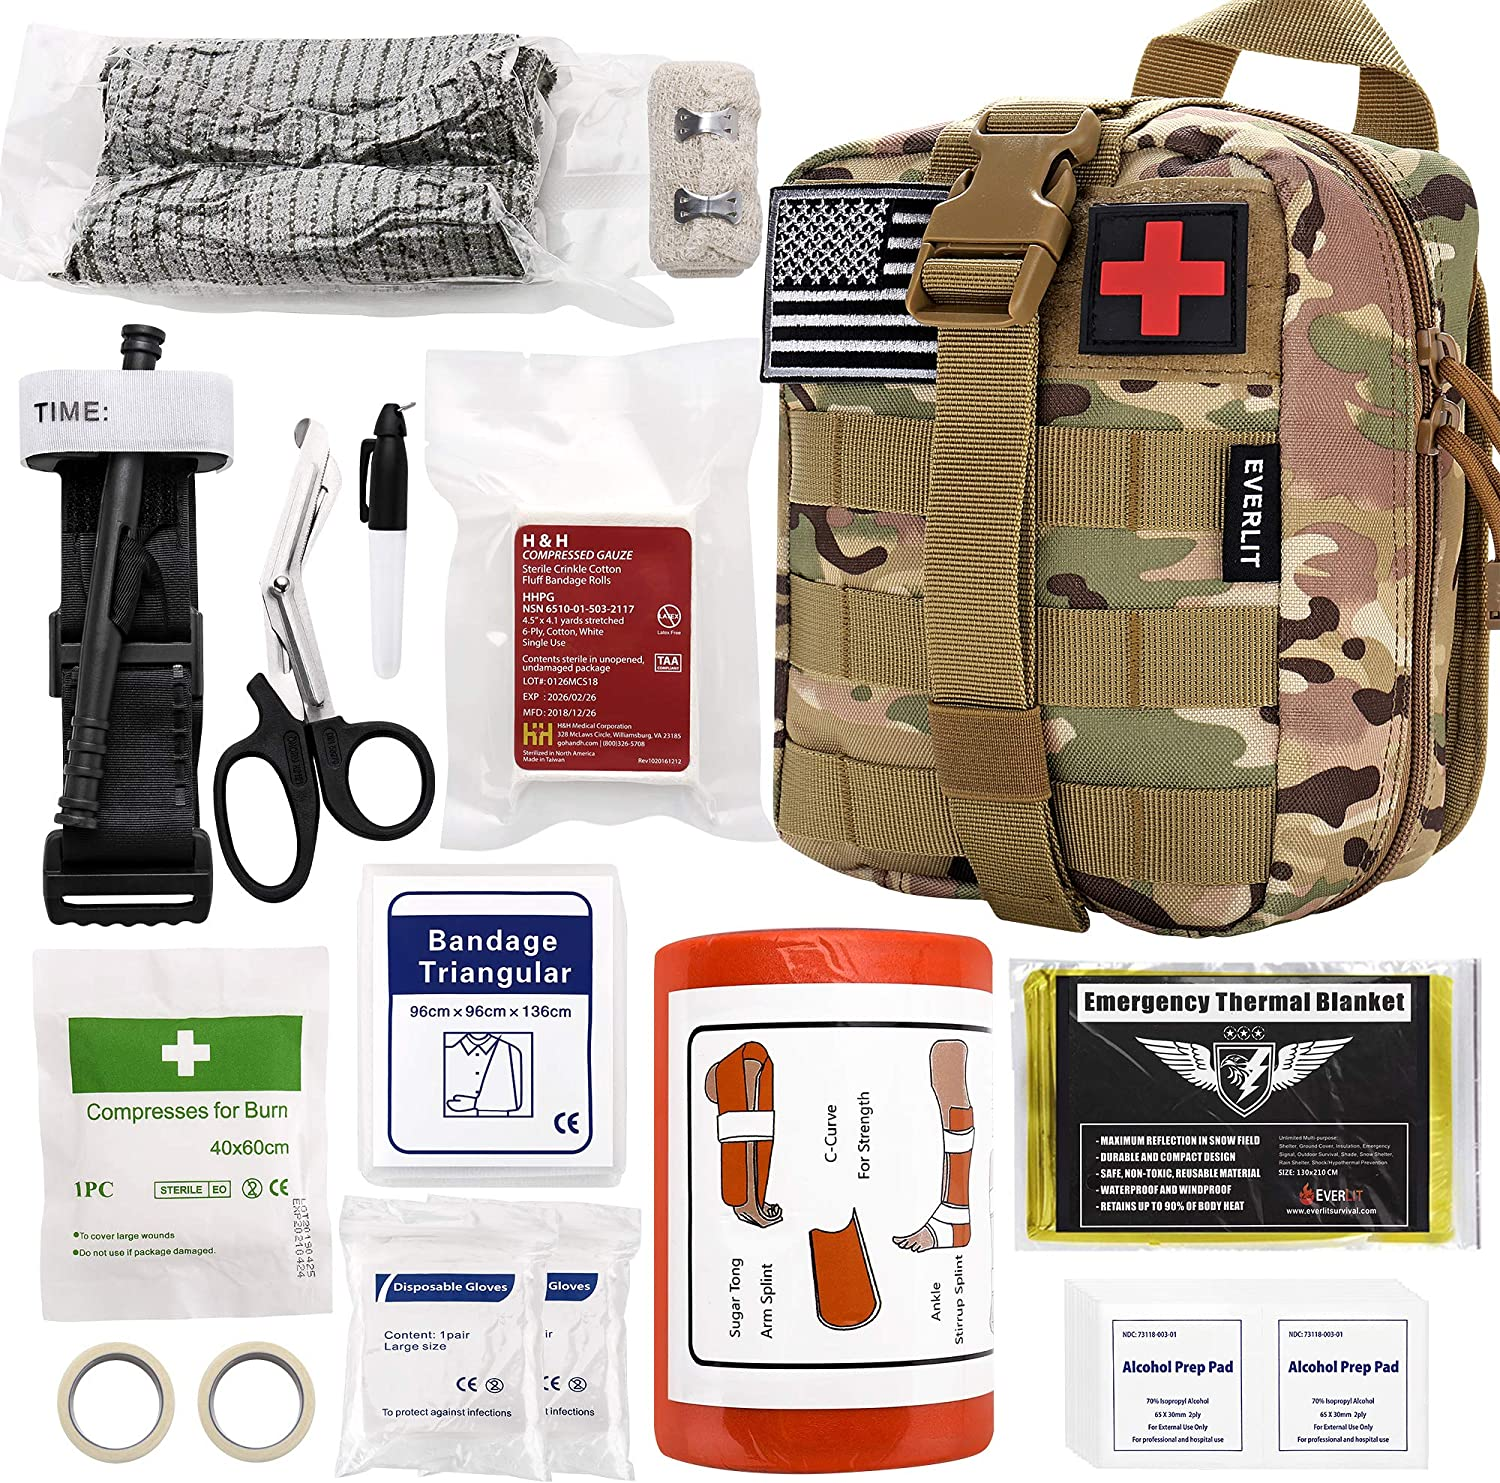 "Everlit Emergency Survival Trauma Kit with Tourniquet 36"" Splint, Military Combat Tactical IFAK for First Aid Response, Critical Wounds, Gun Shots, Blow Out, Severe Bleeding Control and More (CP Camo)"